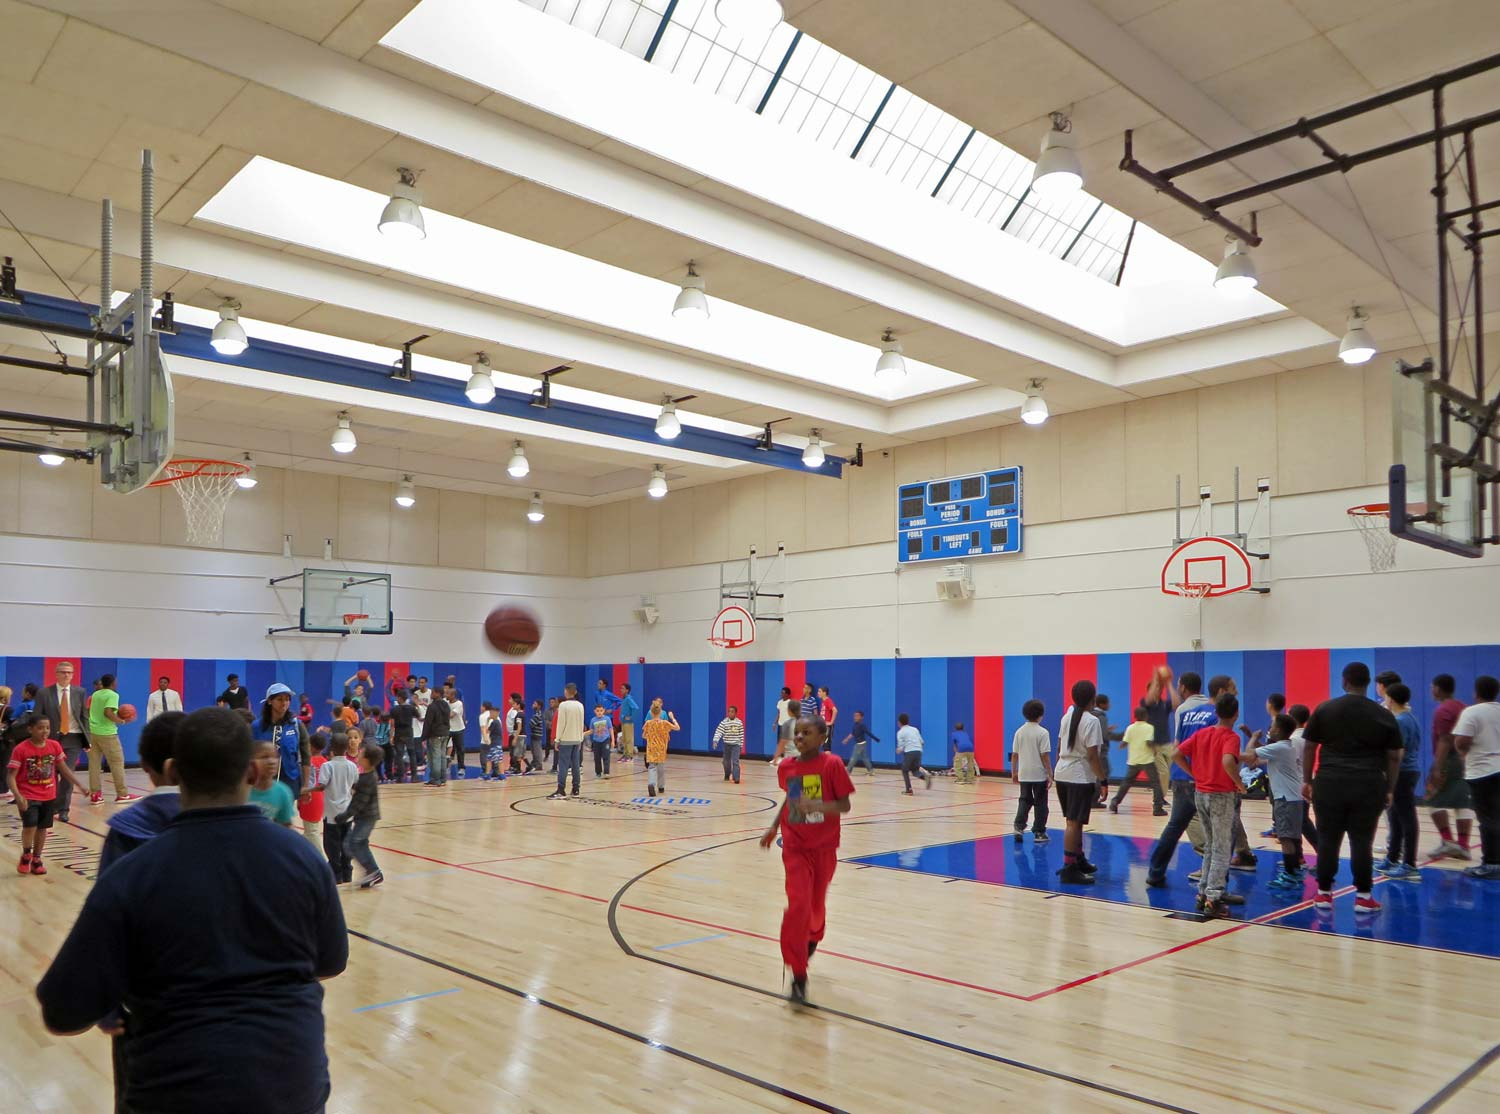 Opening day at Smilow Clubhouse Boys & Girls Club